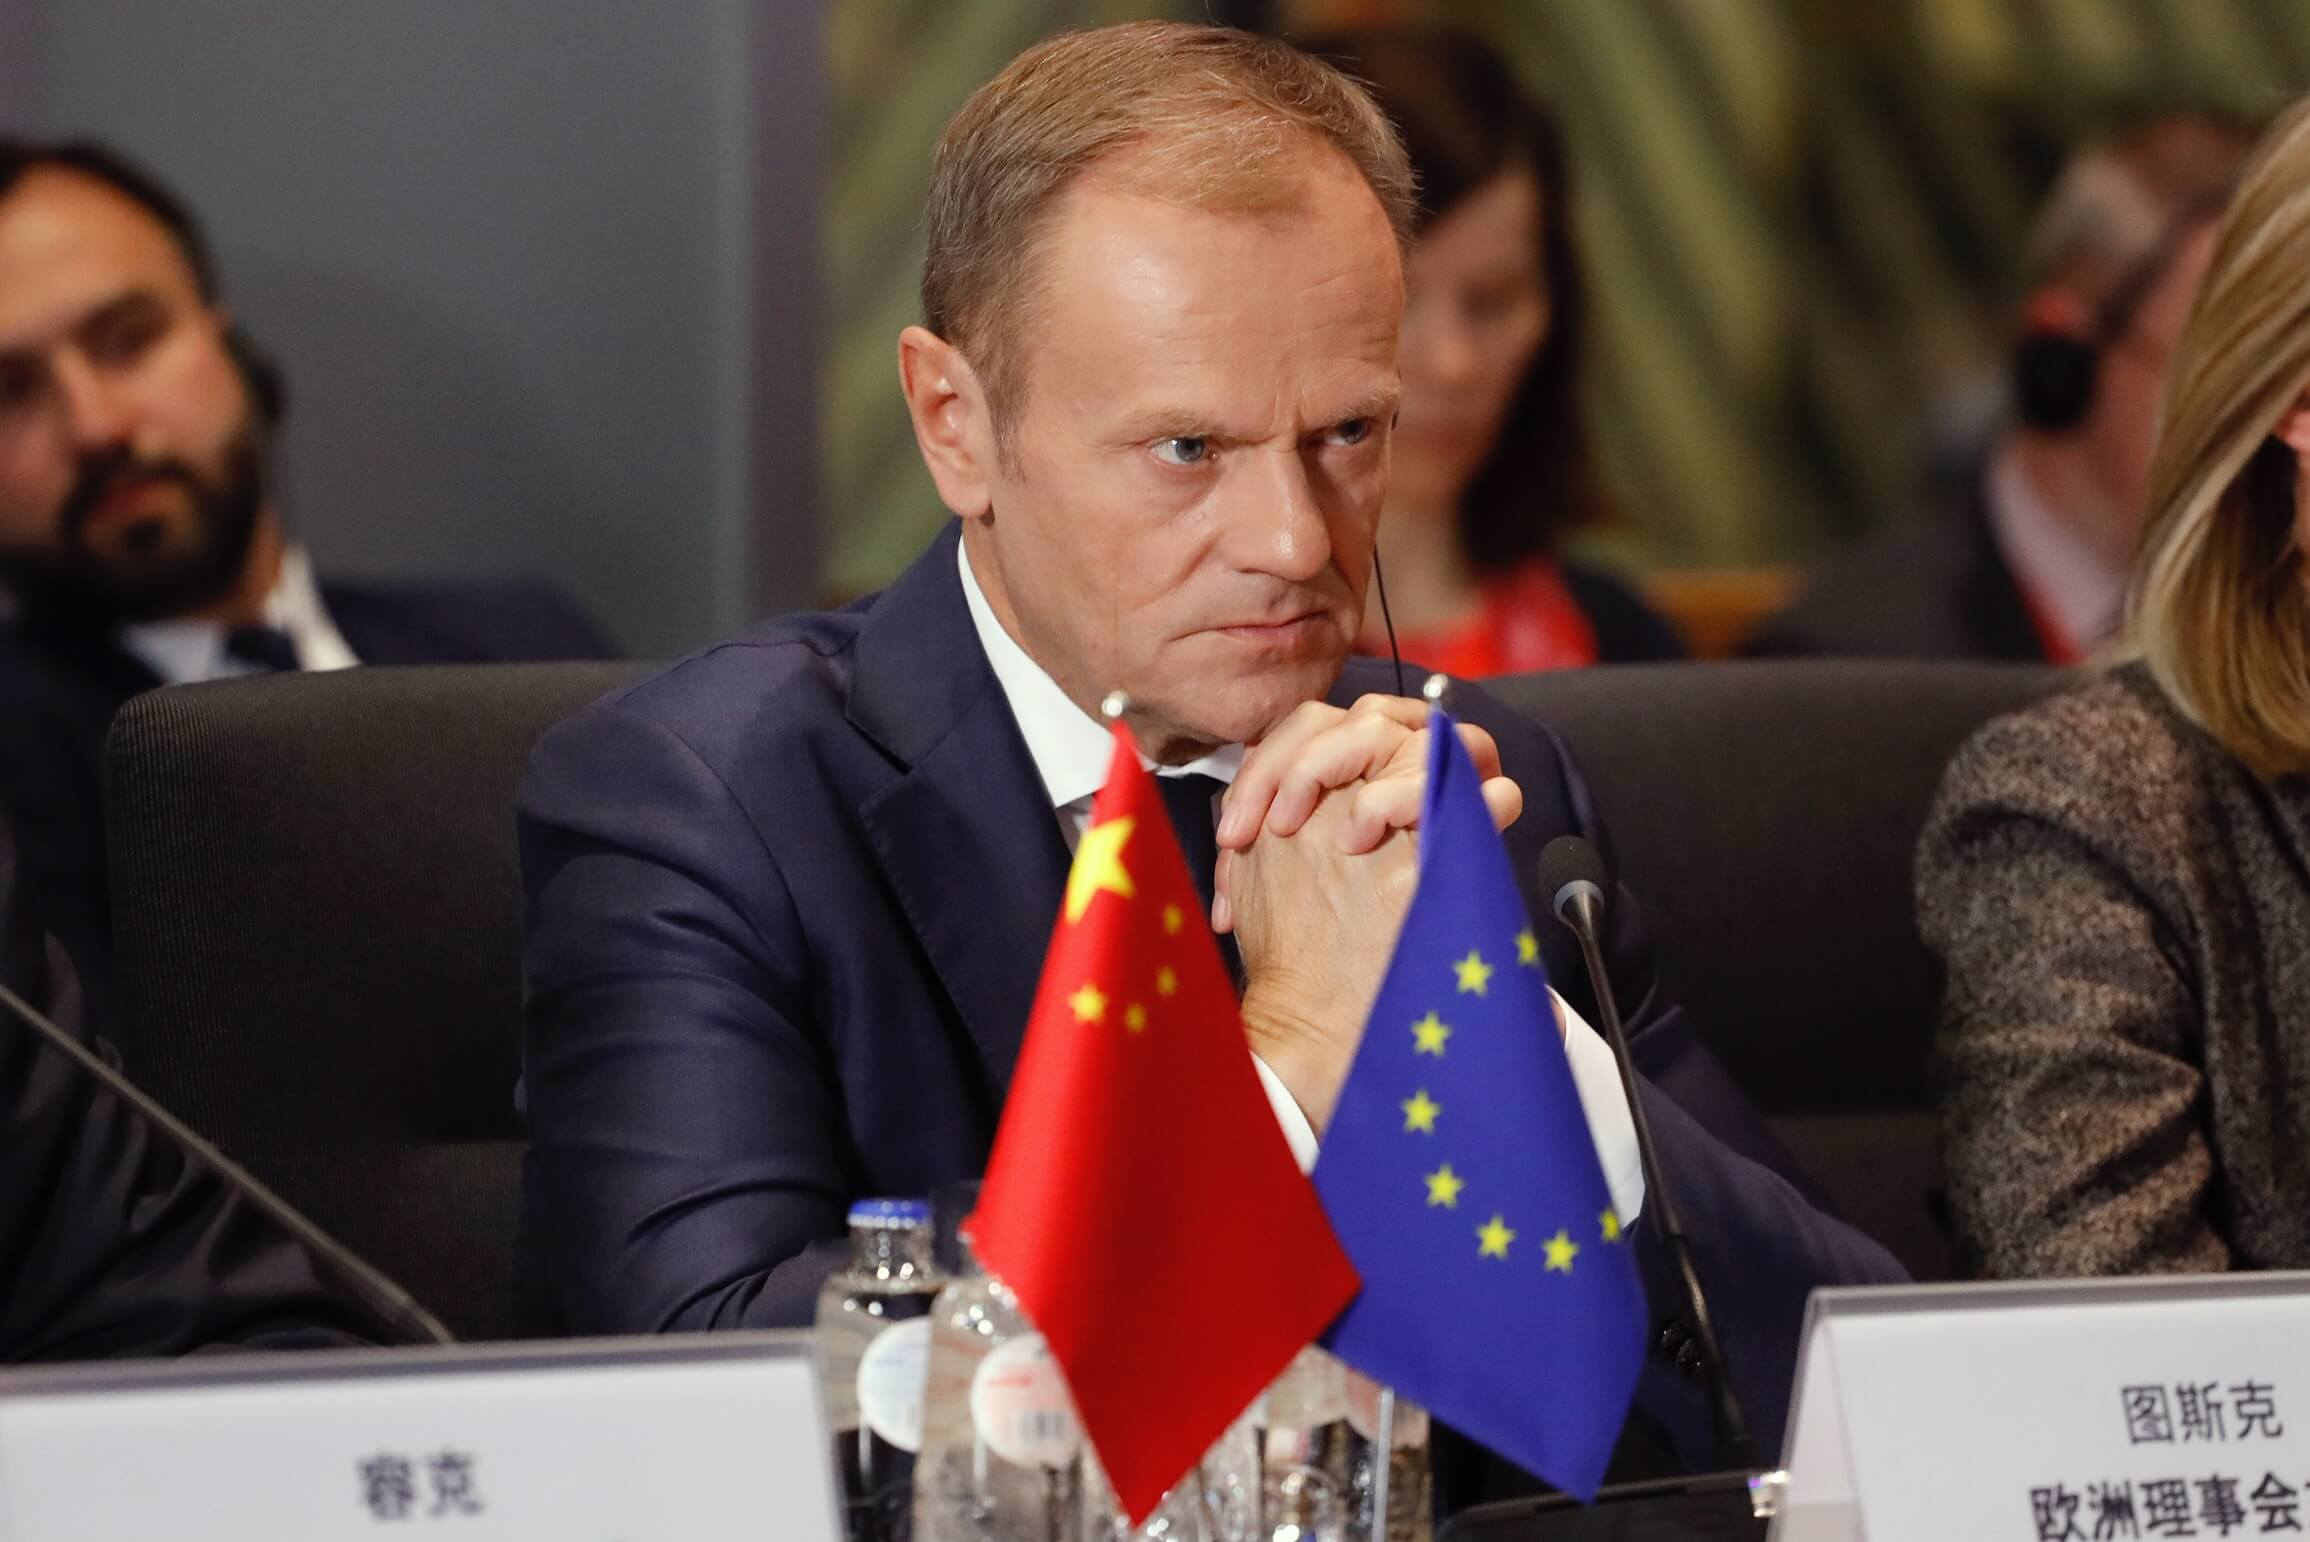 Biscop-President of the European Council Donald Tusk at the EU-China summit, April 2019. © European Union